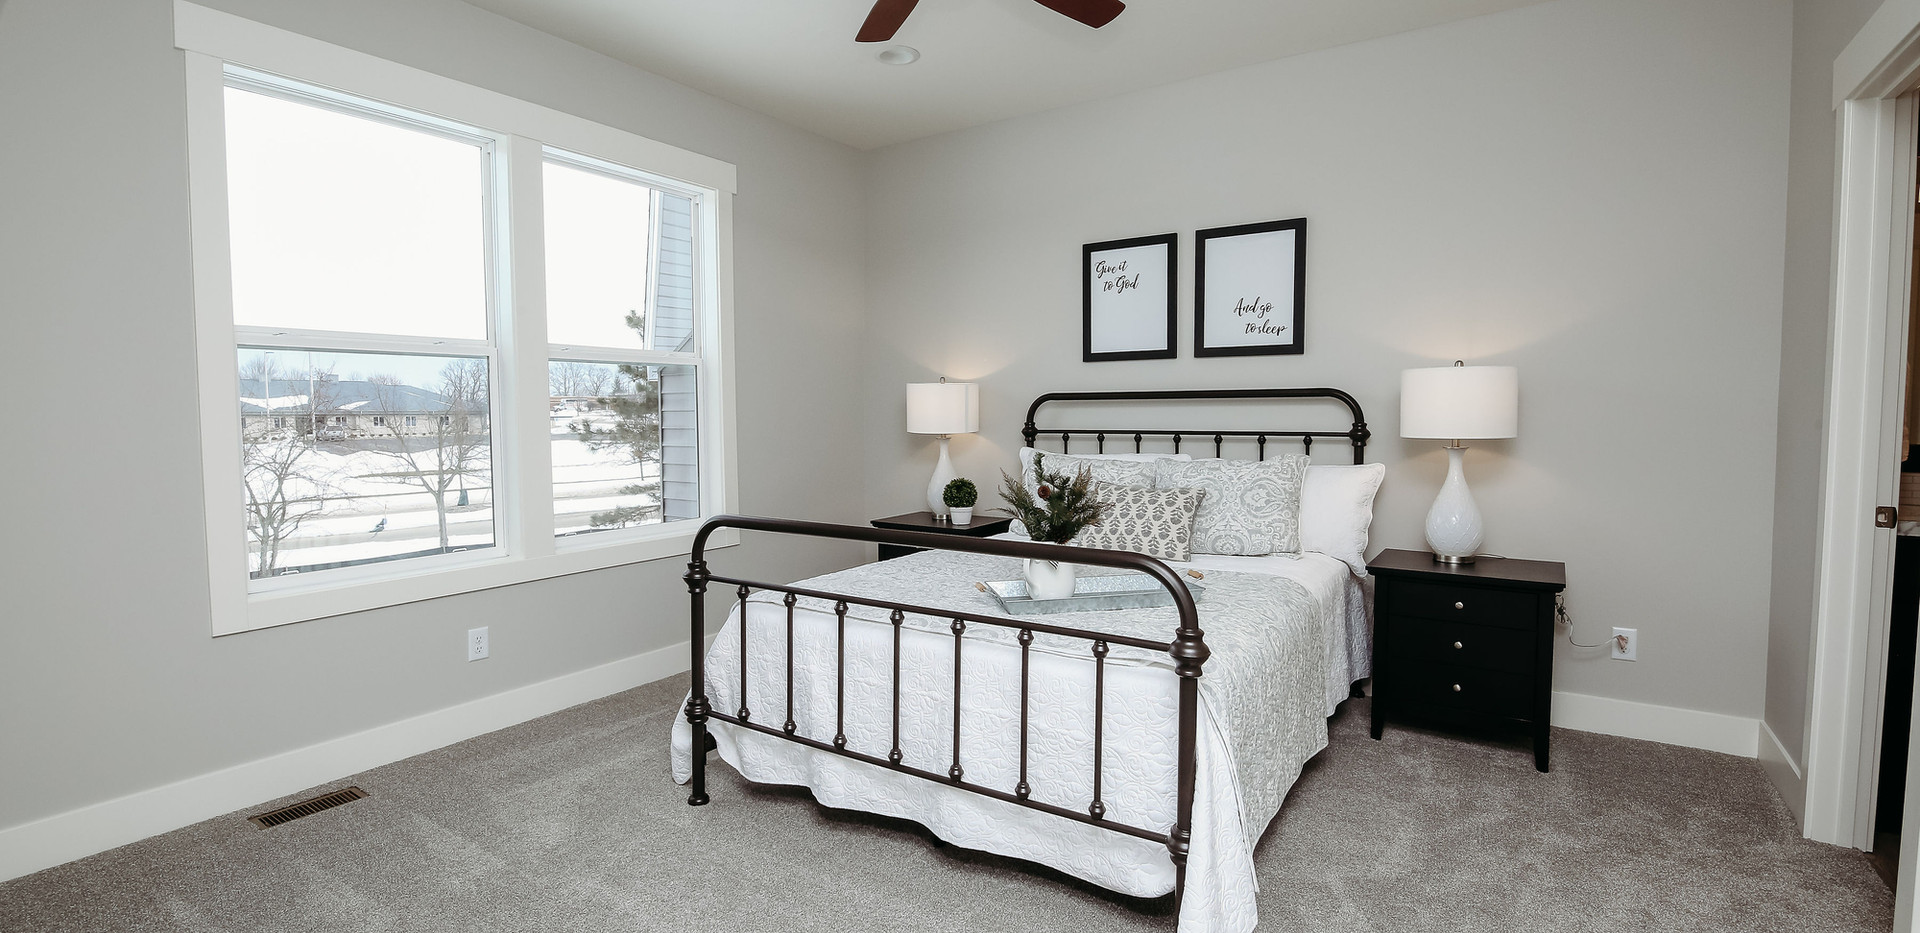 Village Station Master Bedroom